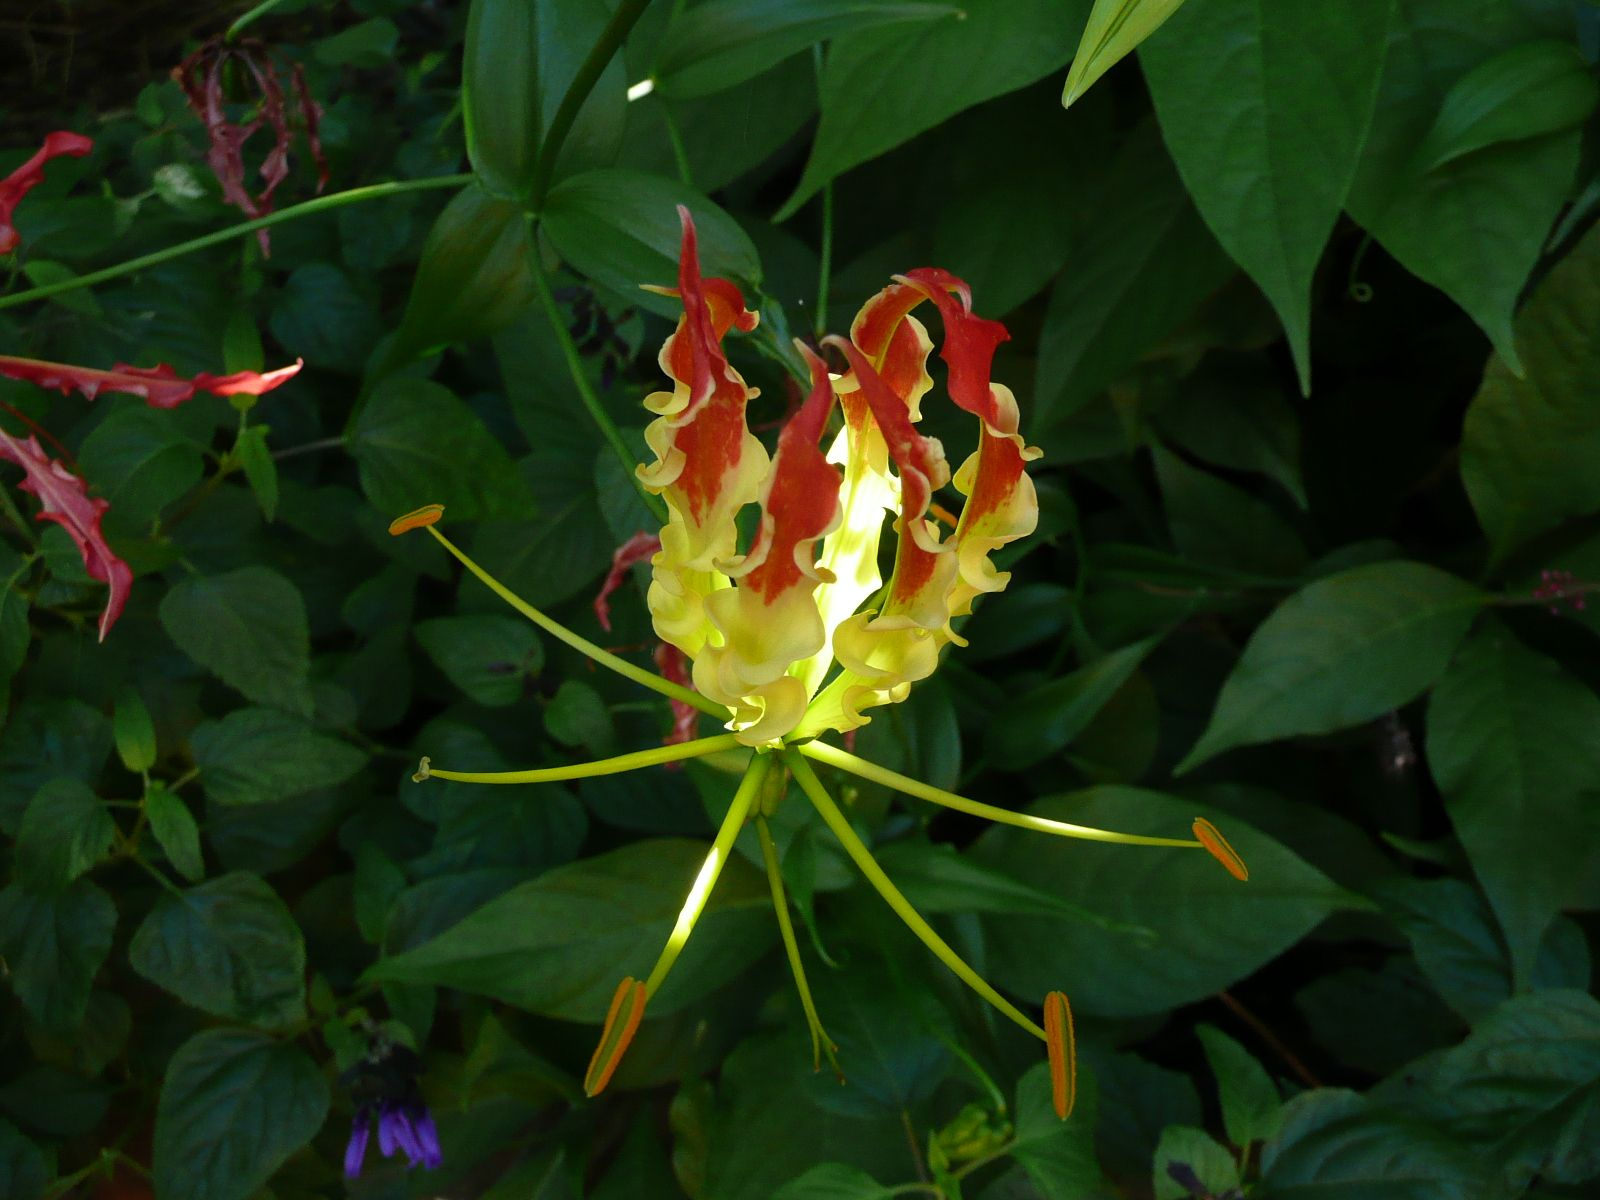 Gloriosa is the state flower of Tamil Nadu. The most